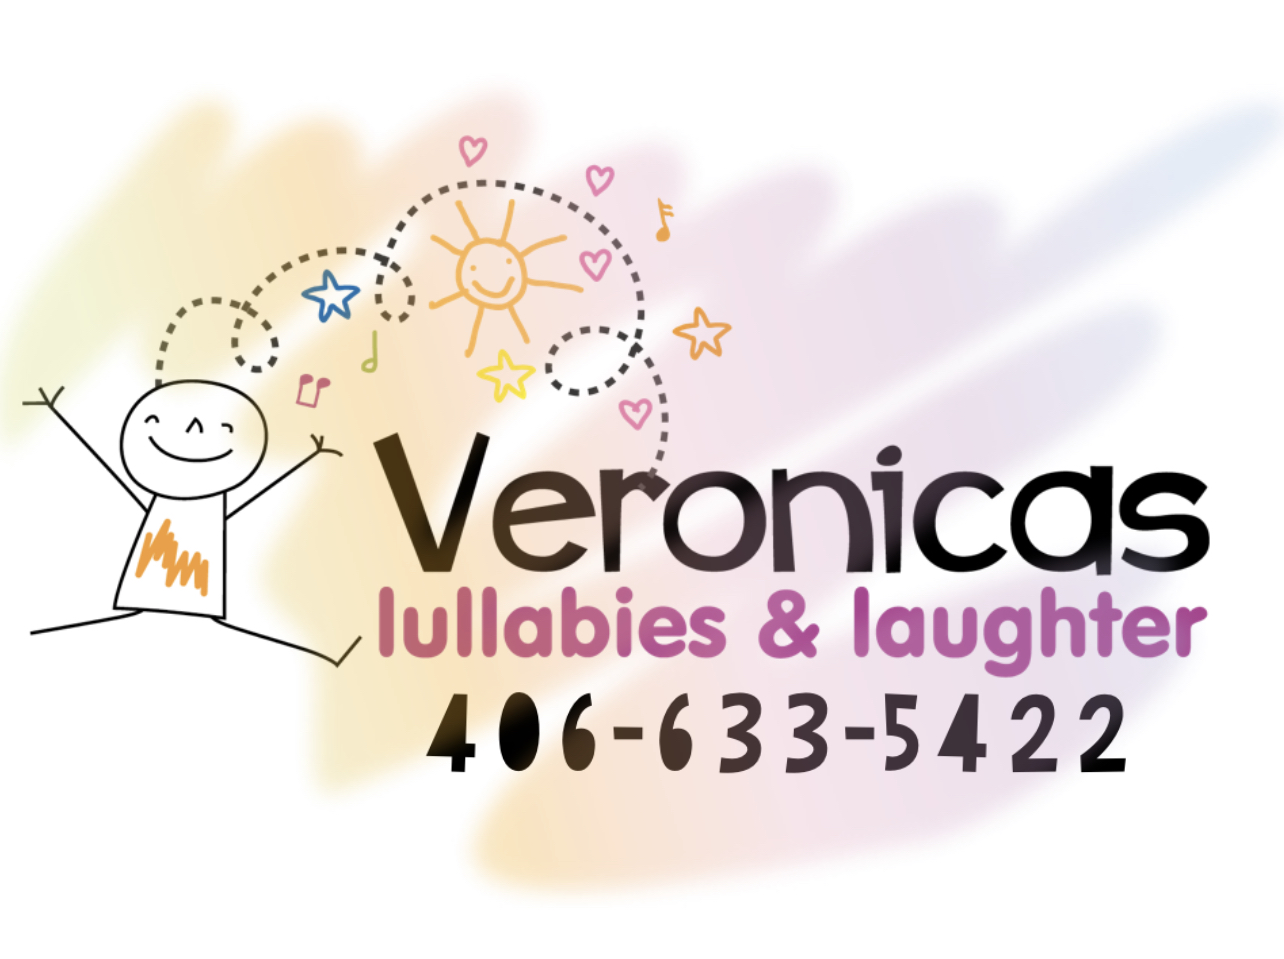 Veronicas lullabies and laughter